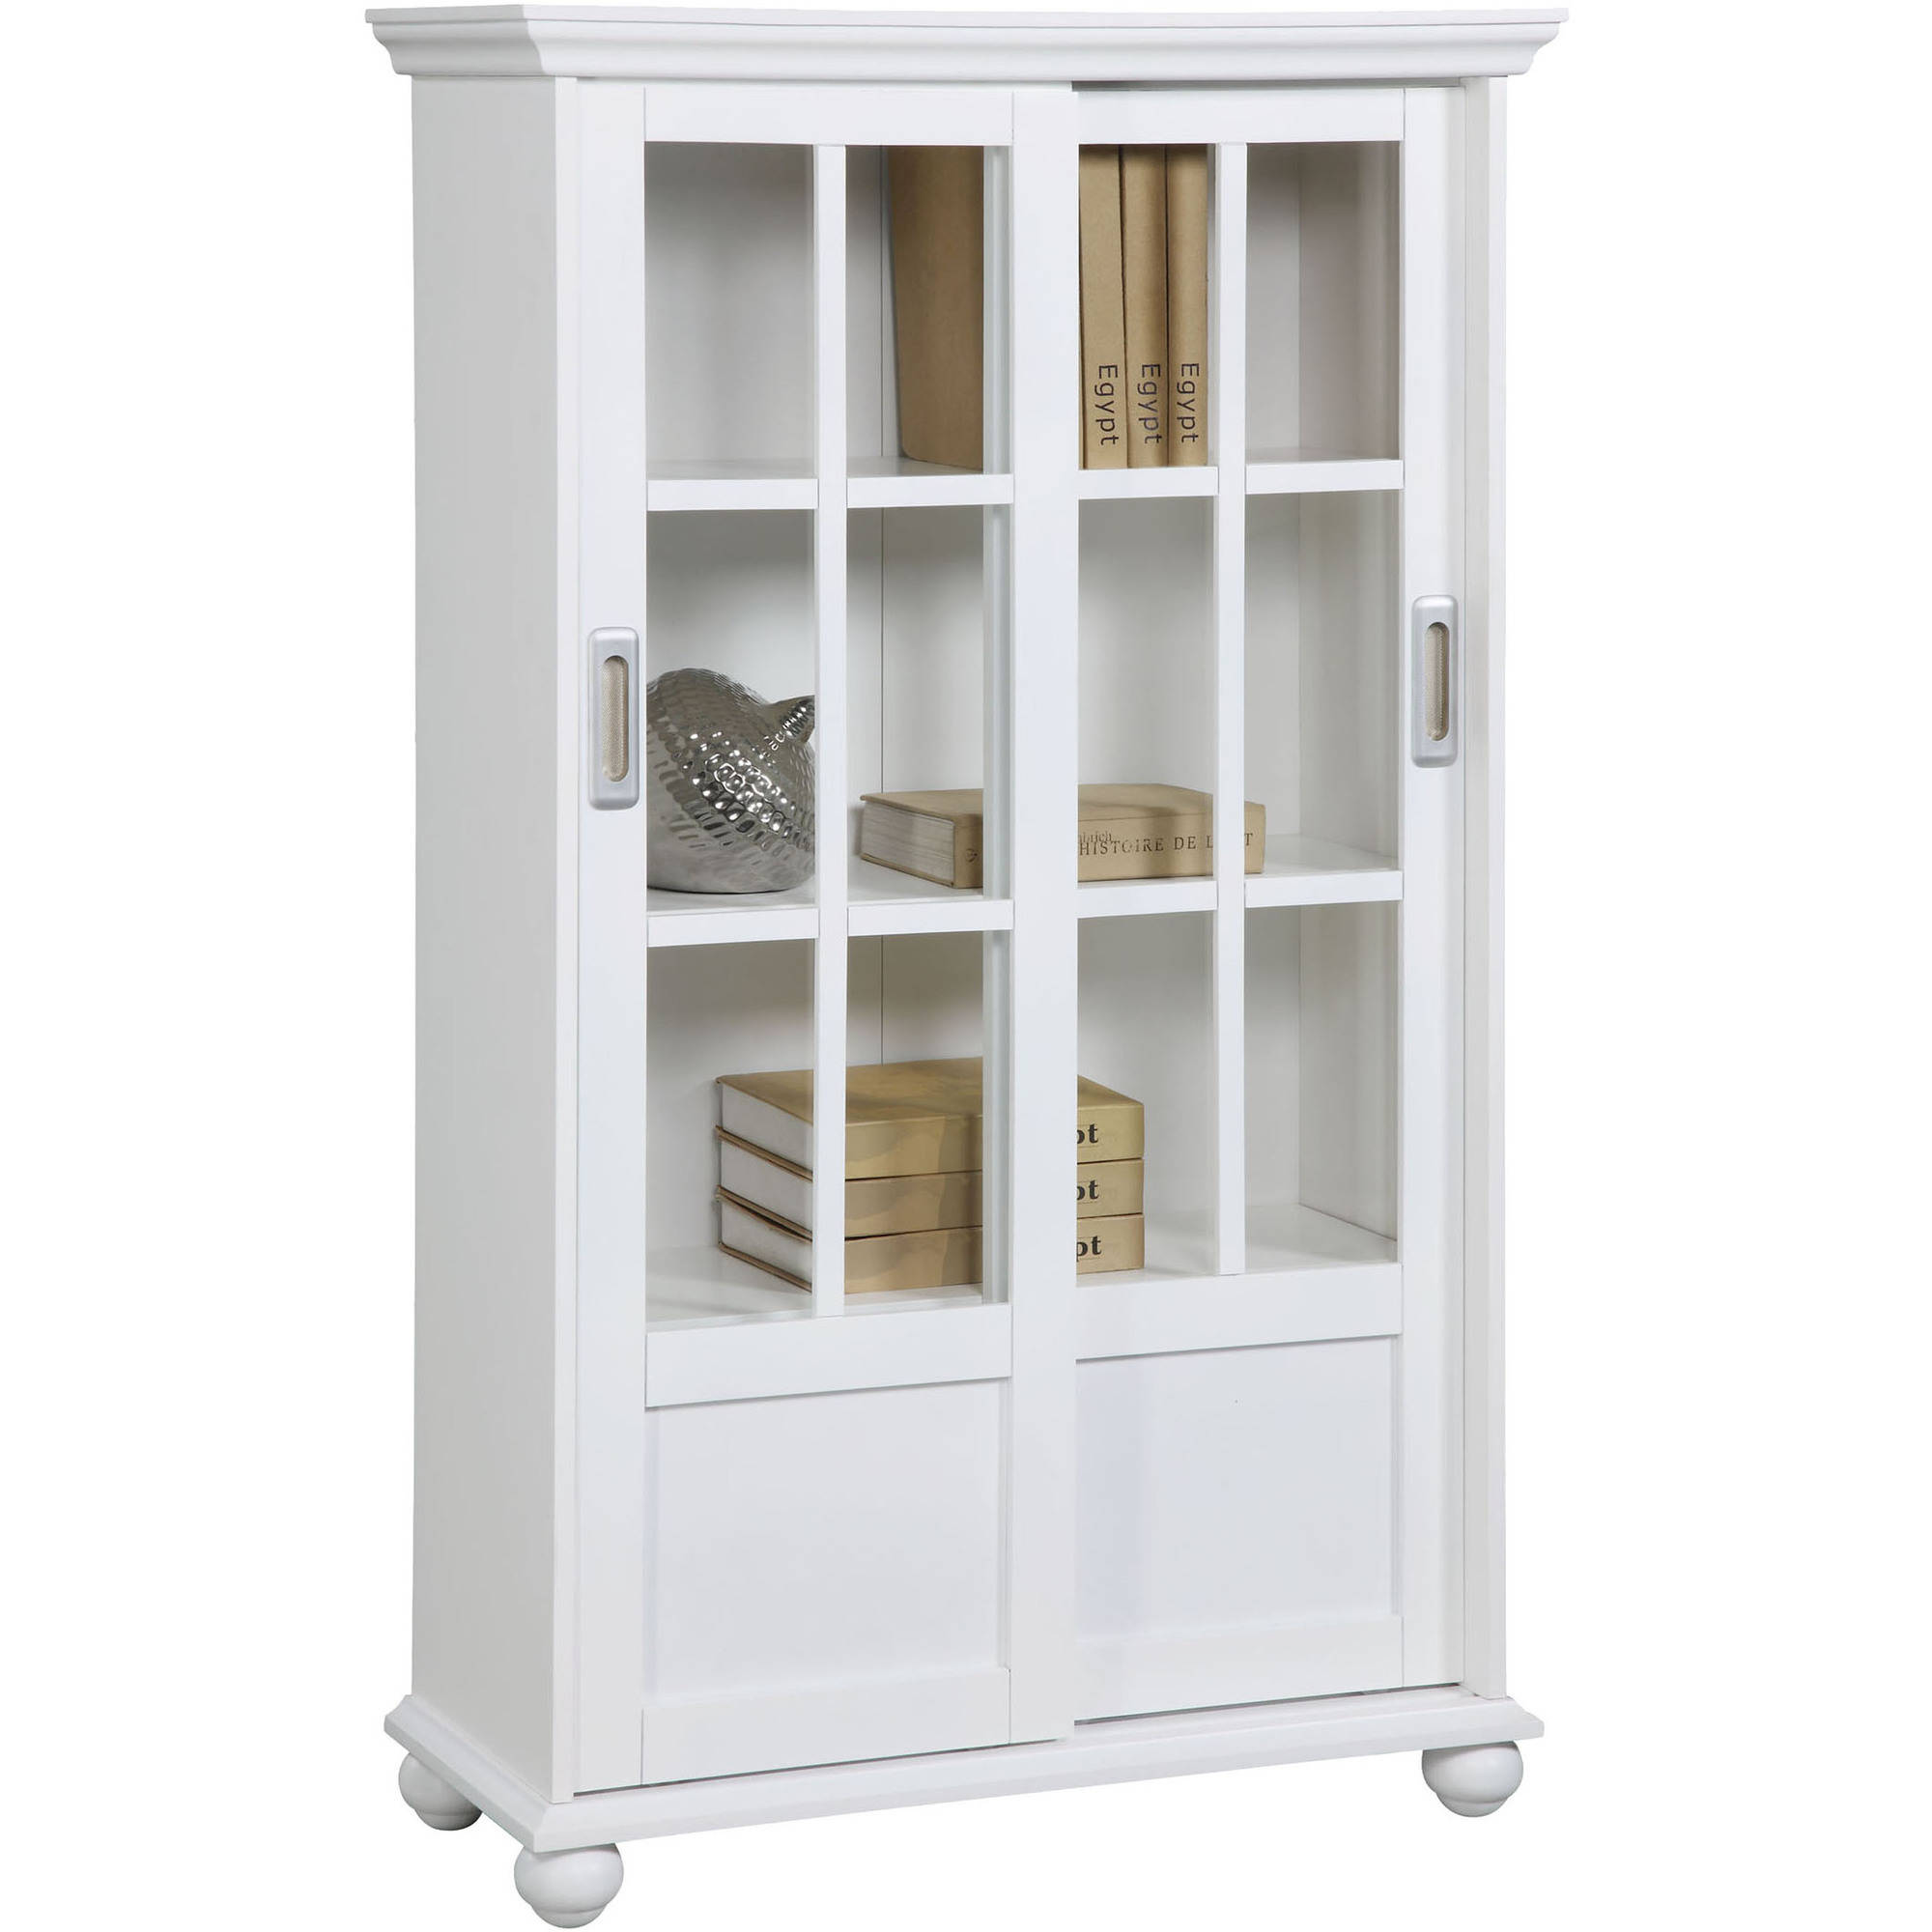 Attrayant Ameriwood Home Aaron Lane Bookcase With Sliding Glass Doors, Multiple  Colors   Walmart.com